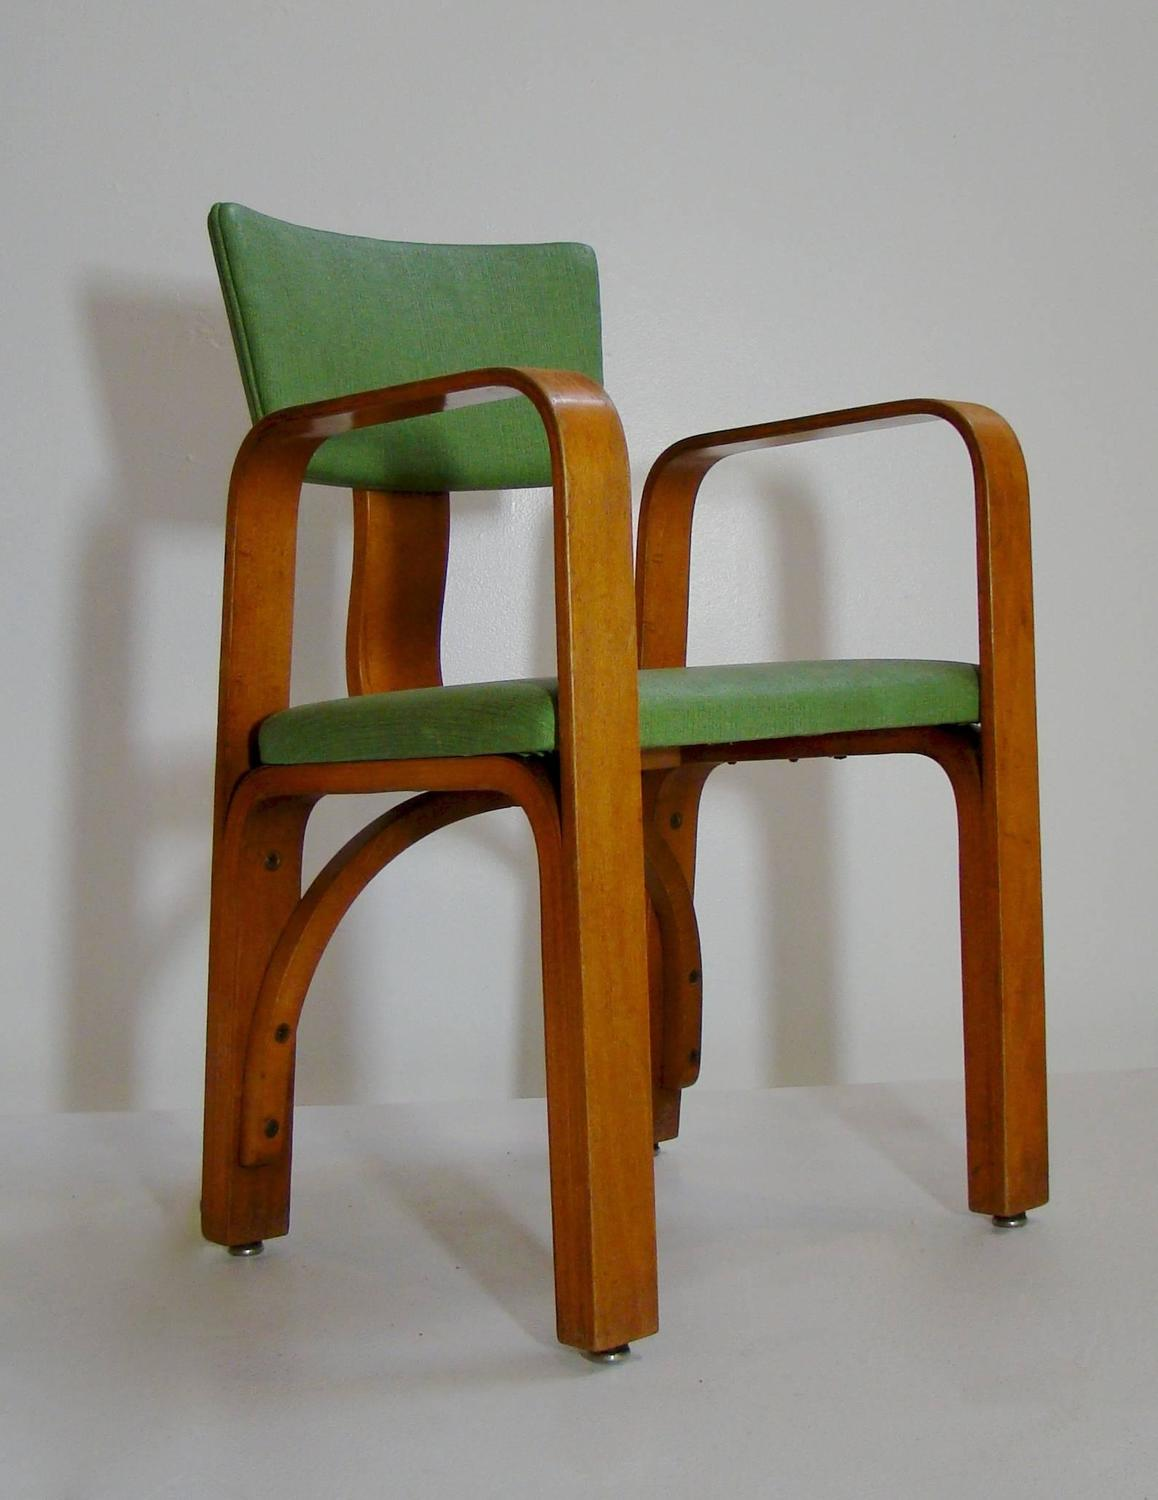 bentwood childs armchair or occasional chair attributed to